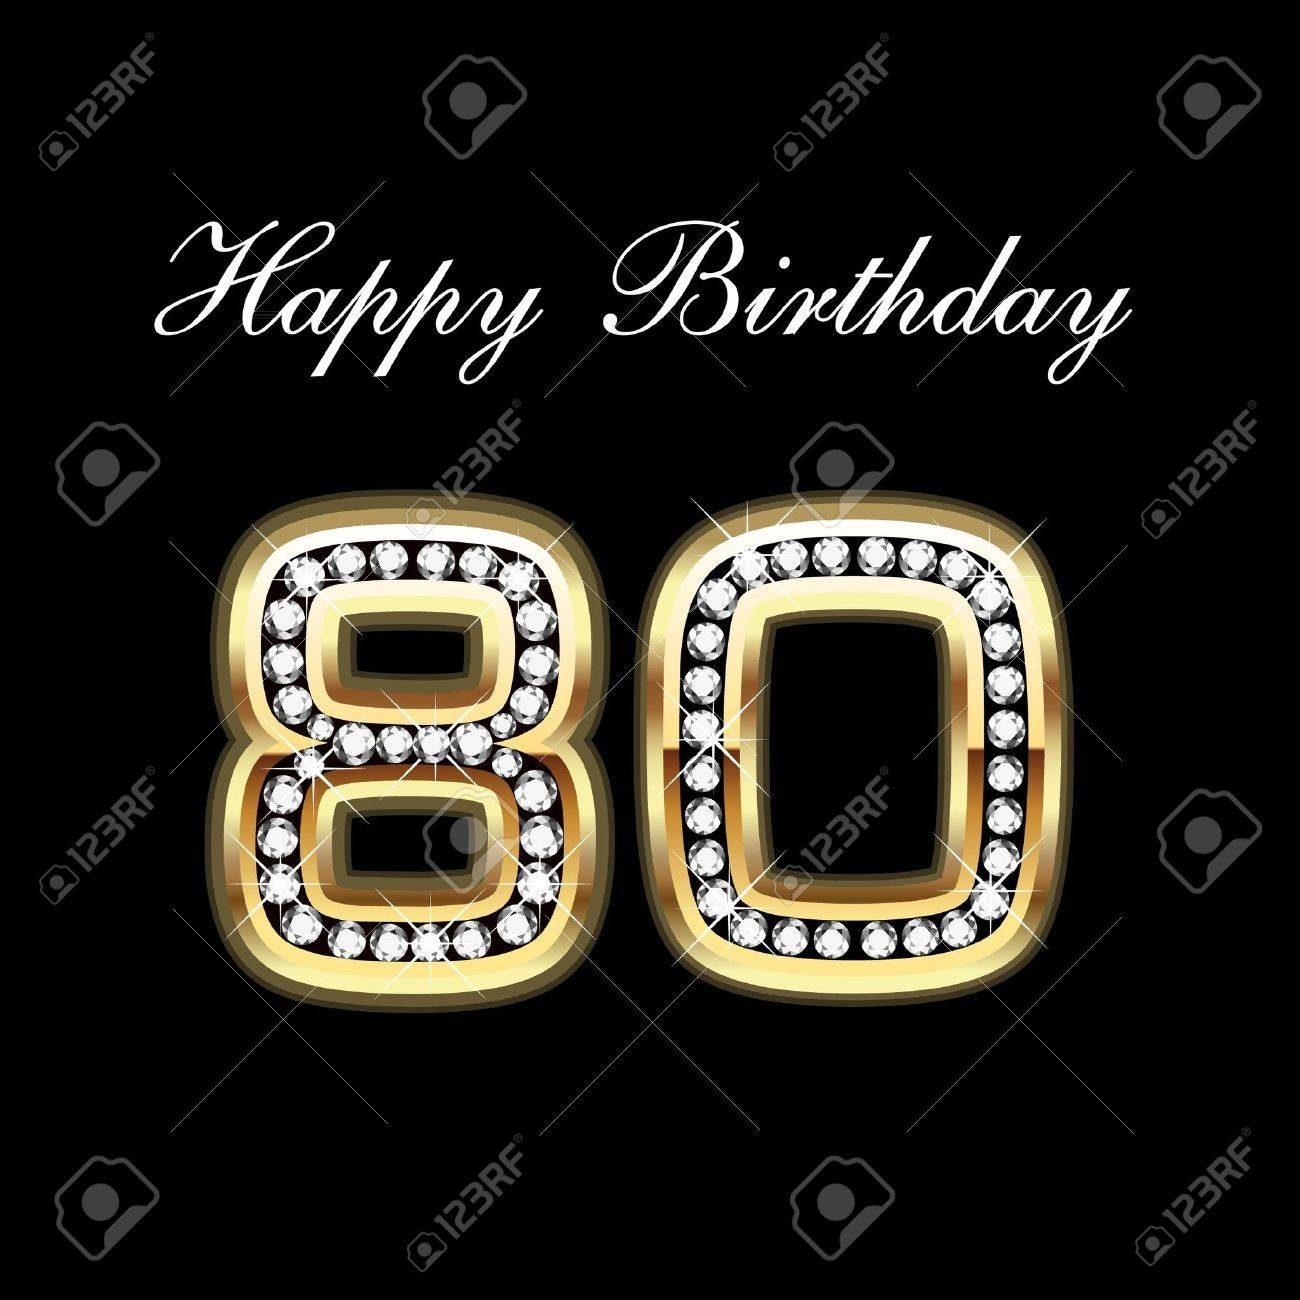 80th birthday borders and frames 80th birthday card - 80th Happy Birthday Stock Vector 10837030